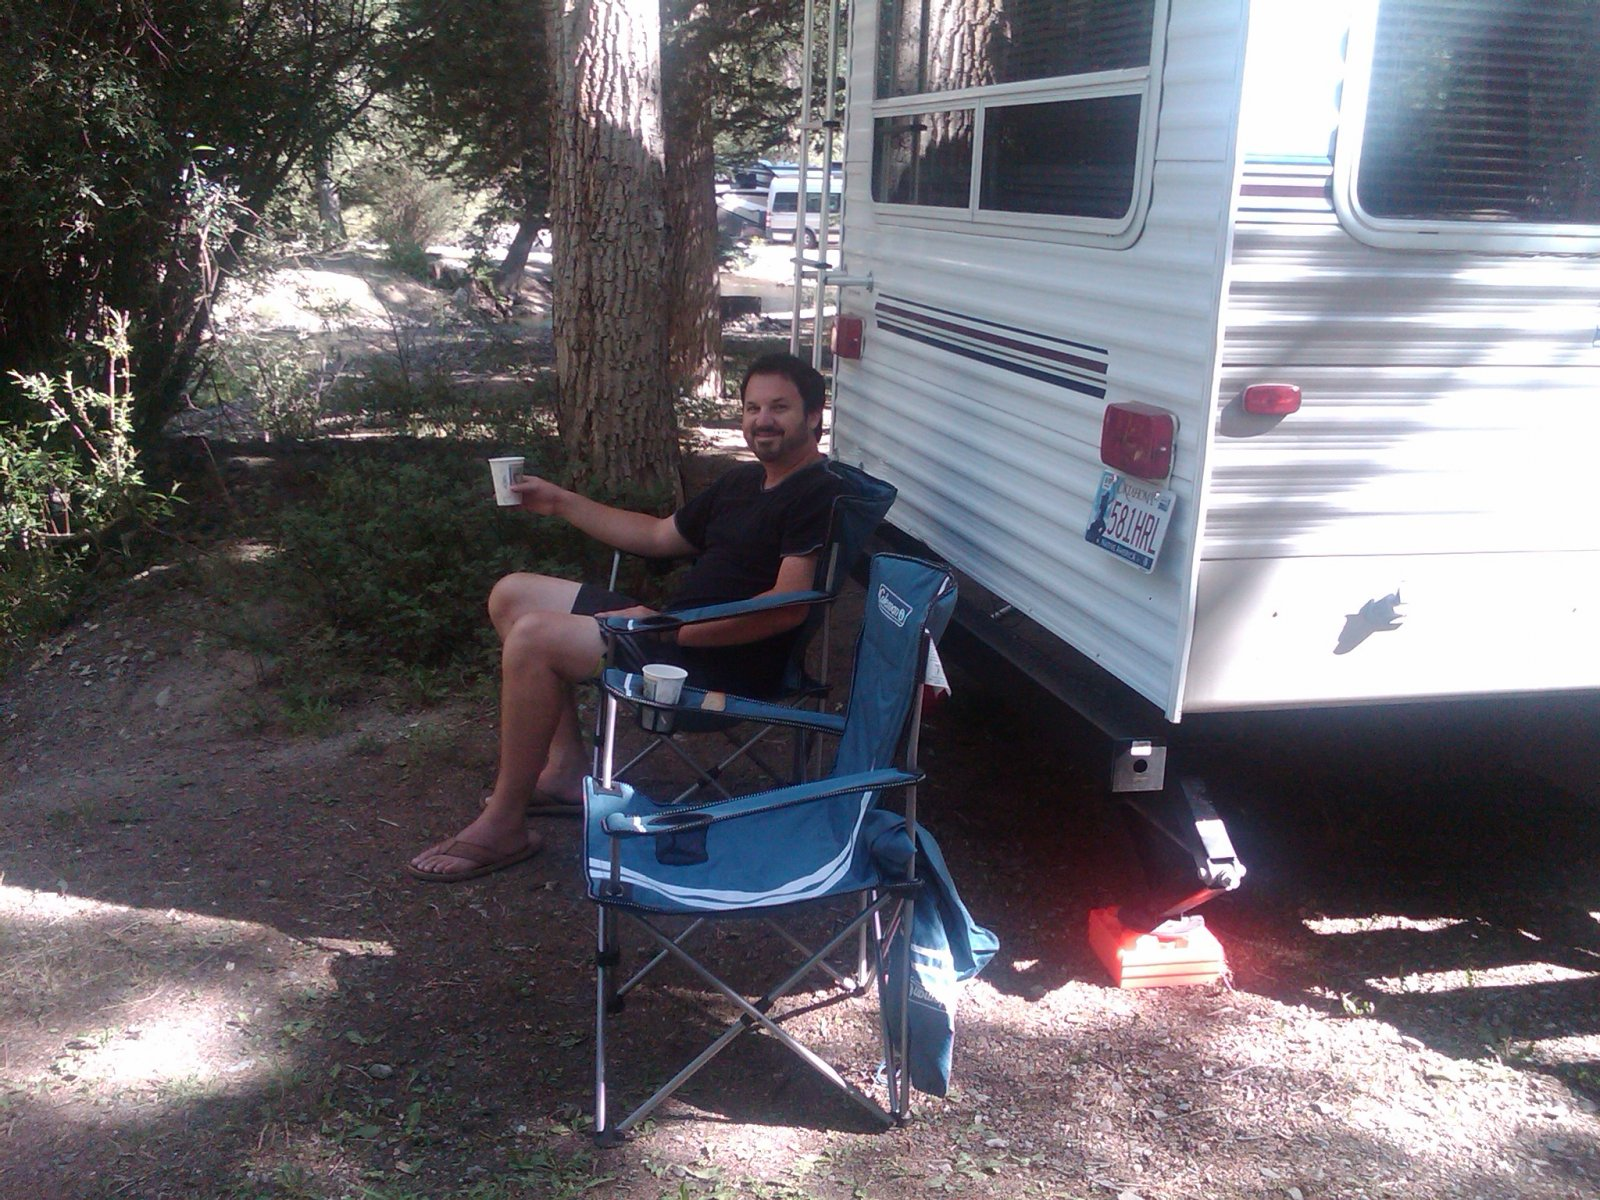 Click image for larger version  Name:Copy of Tim camping.jpg Views:248 Size:419.2 KB ID:12227